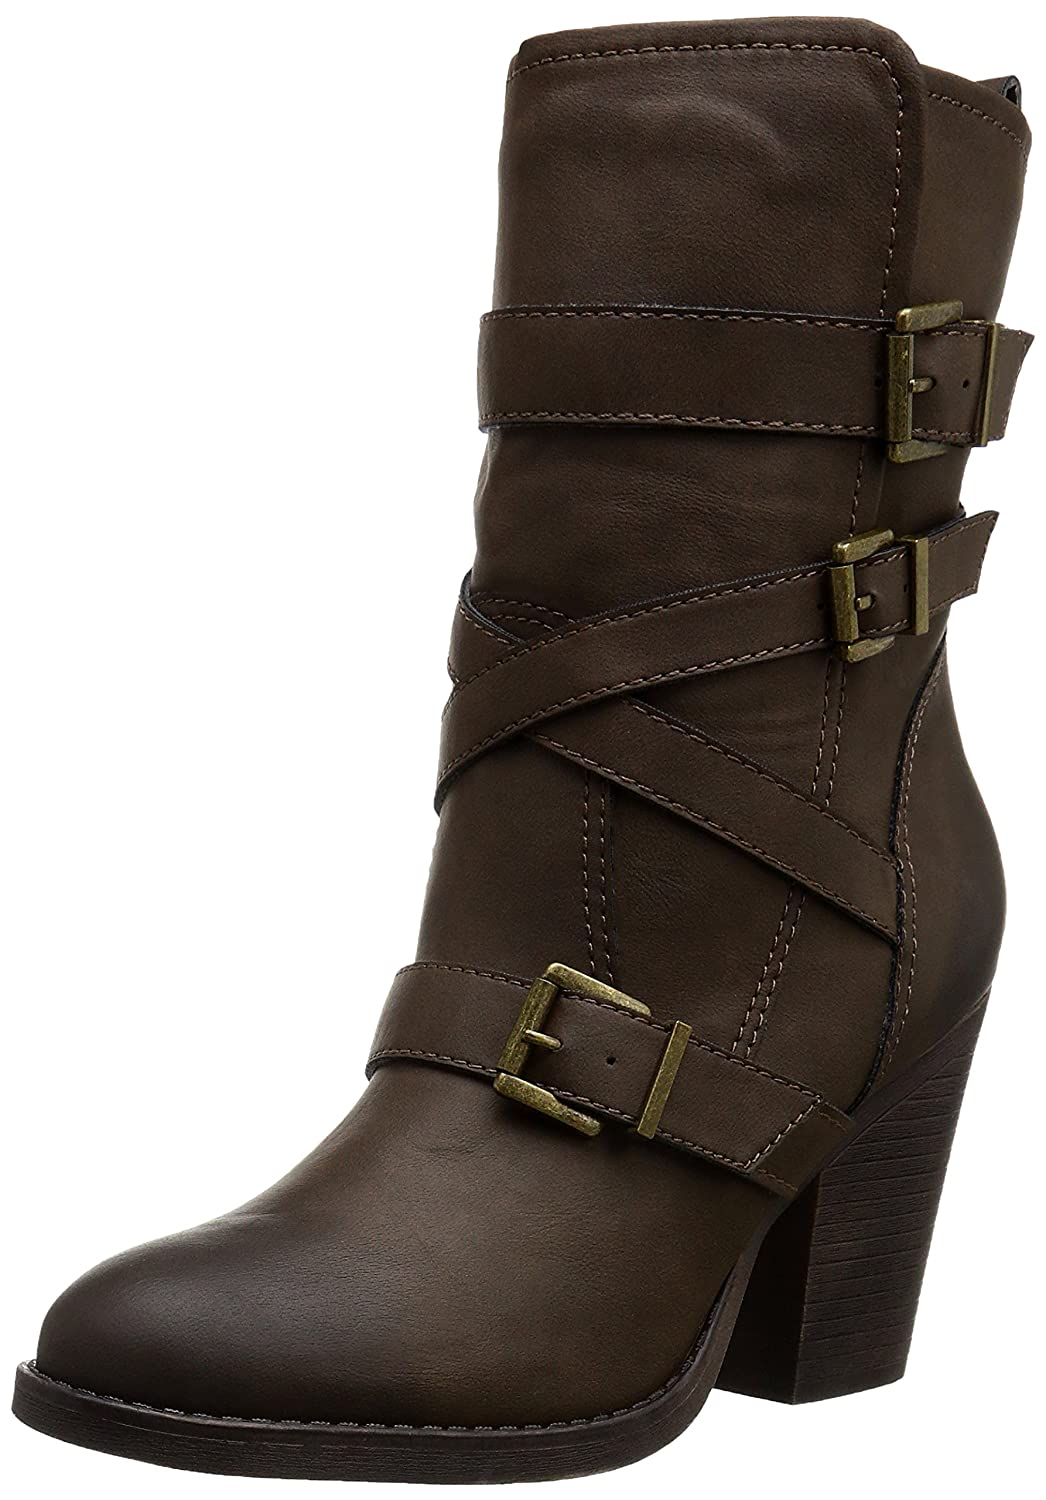 Madden Girl Women's Kloo Engineer Boot B010TIXSJW 6 B(M) US|Brown Paris